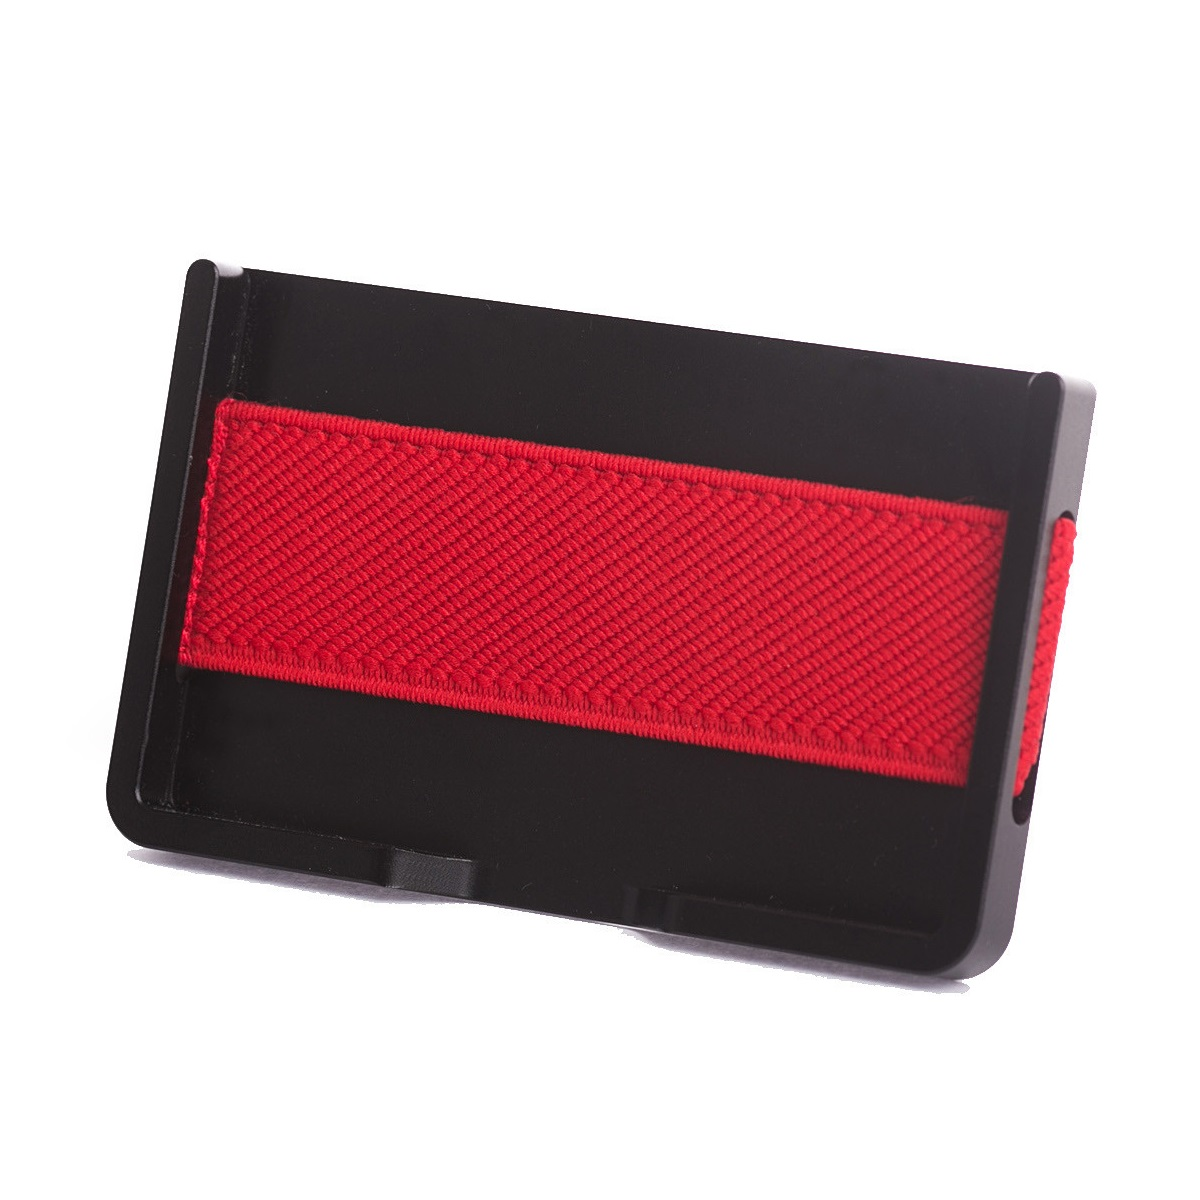 elephant Minimalist Aluminum Wallet - Black/Red